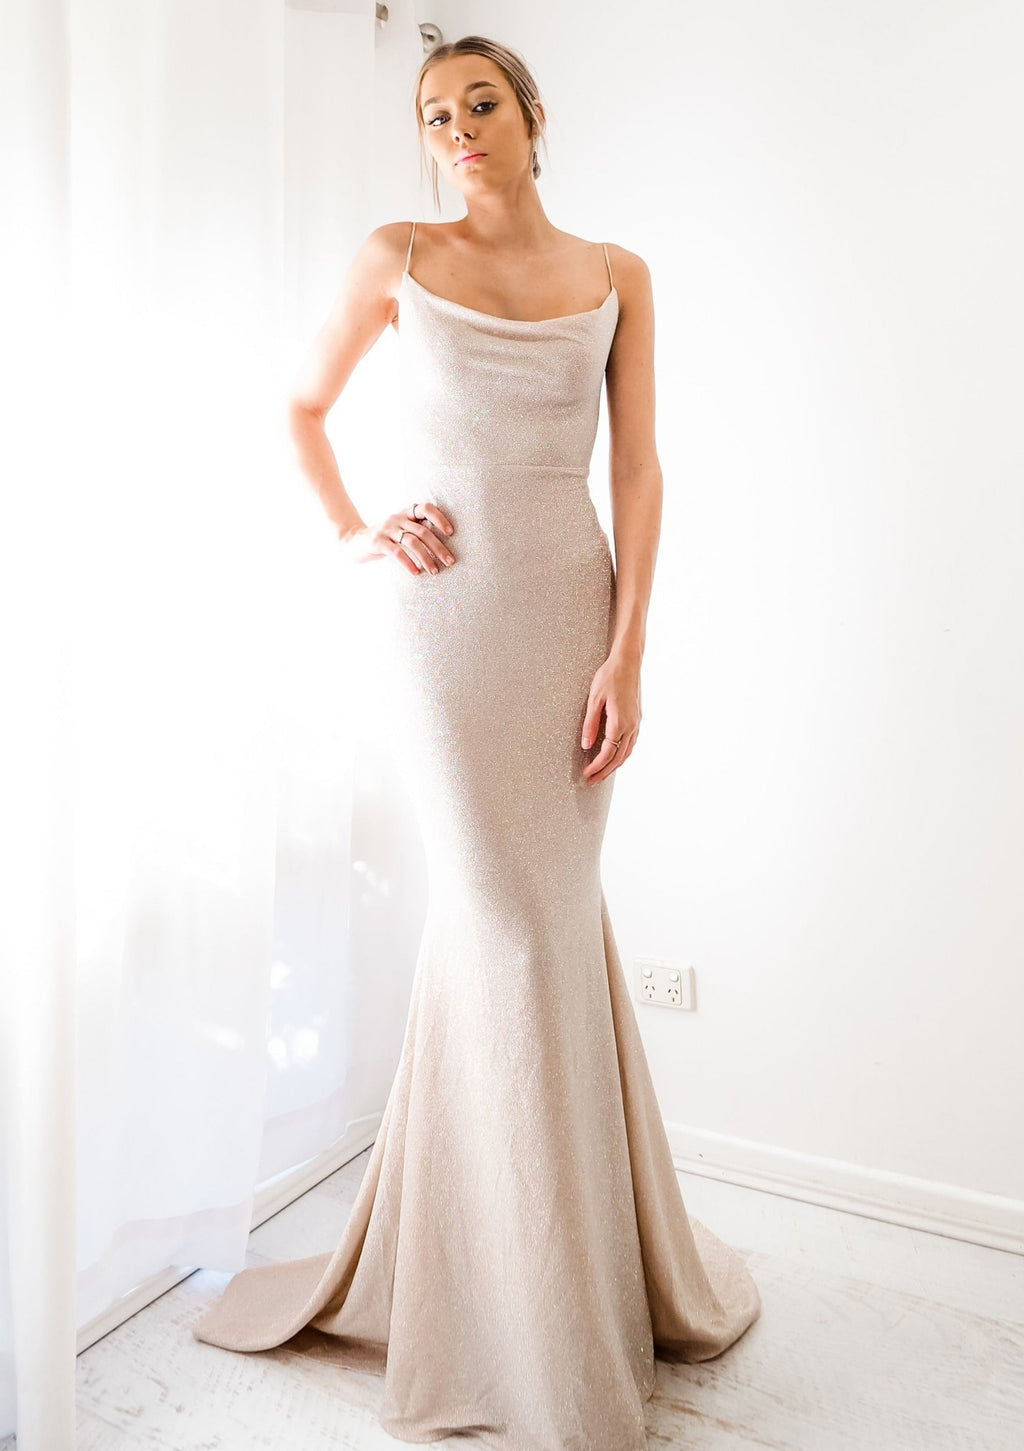 Elle sparkling gold nude cowl neck mermaid dress